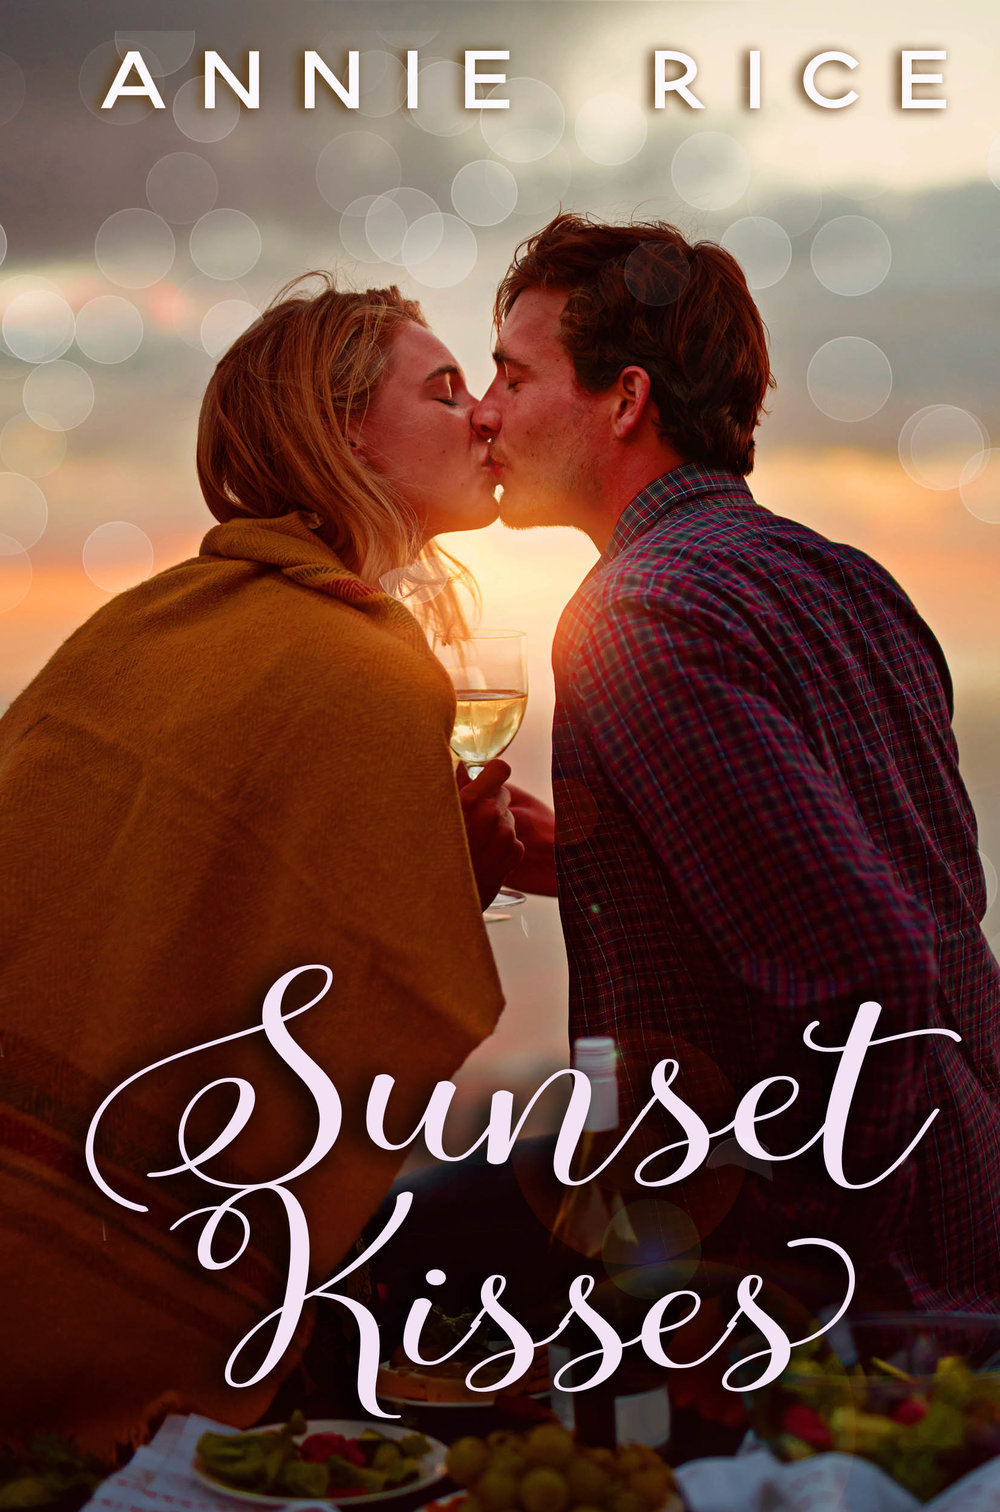 SunsetKisses32.jpg